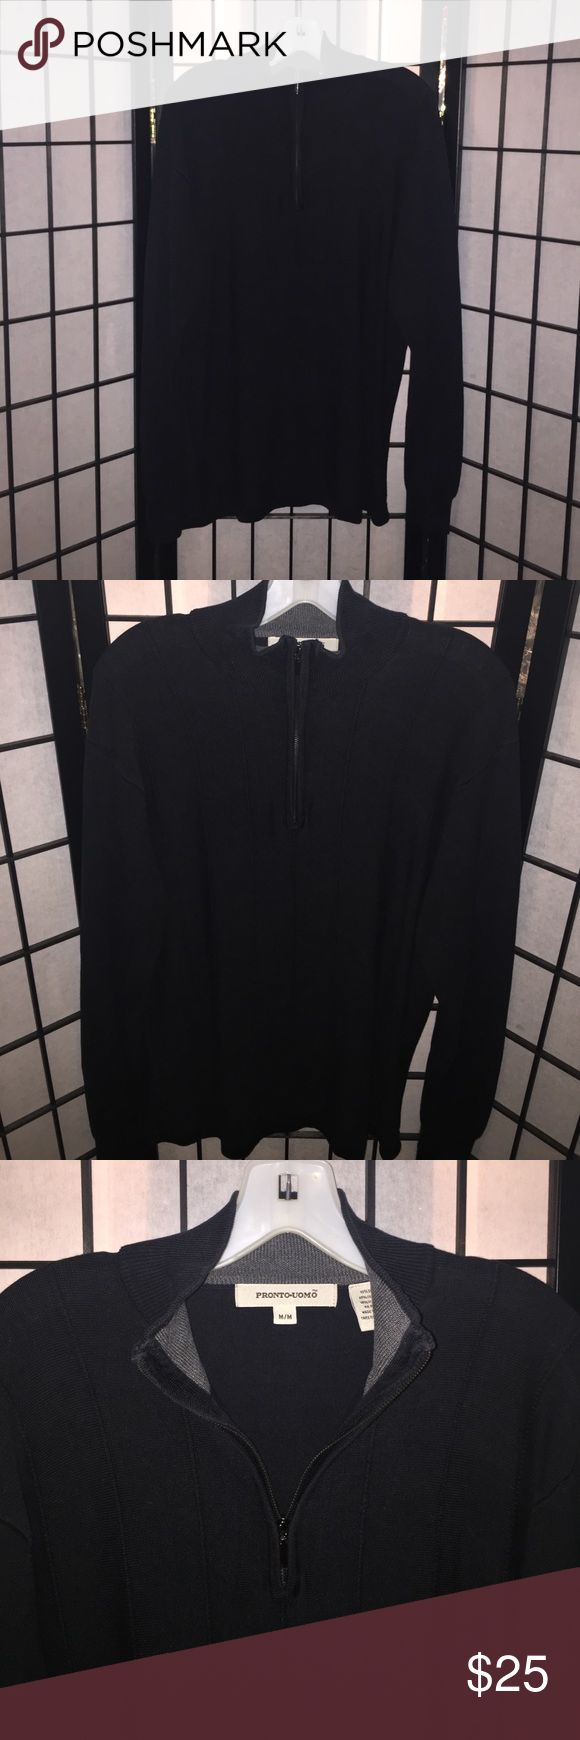 Mens Pronto Uomo Silk Sweater Size Medium Very nice! Classy! Men's Pronto Uomo Silk Sweater. Black with silver zip in front collar. Size medium. Excellent Preowned Condition. 55% Silk 27% Cotton 18% Viscose. Nonsmoking home. Pronto Uomo Sweaters Zip Up